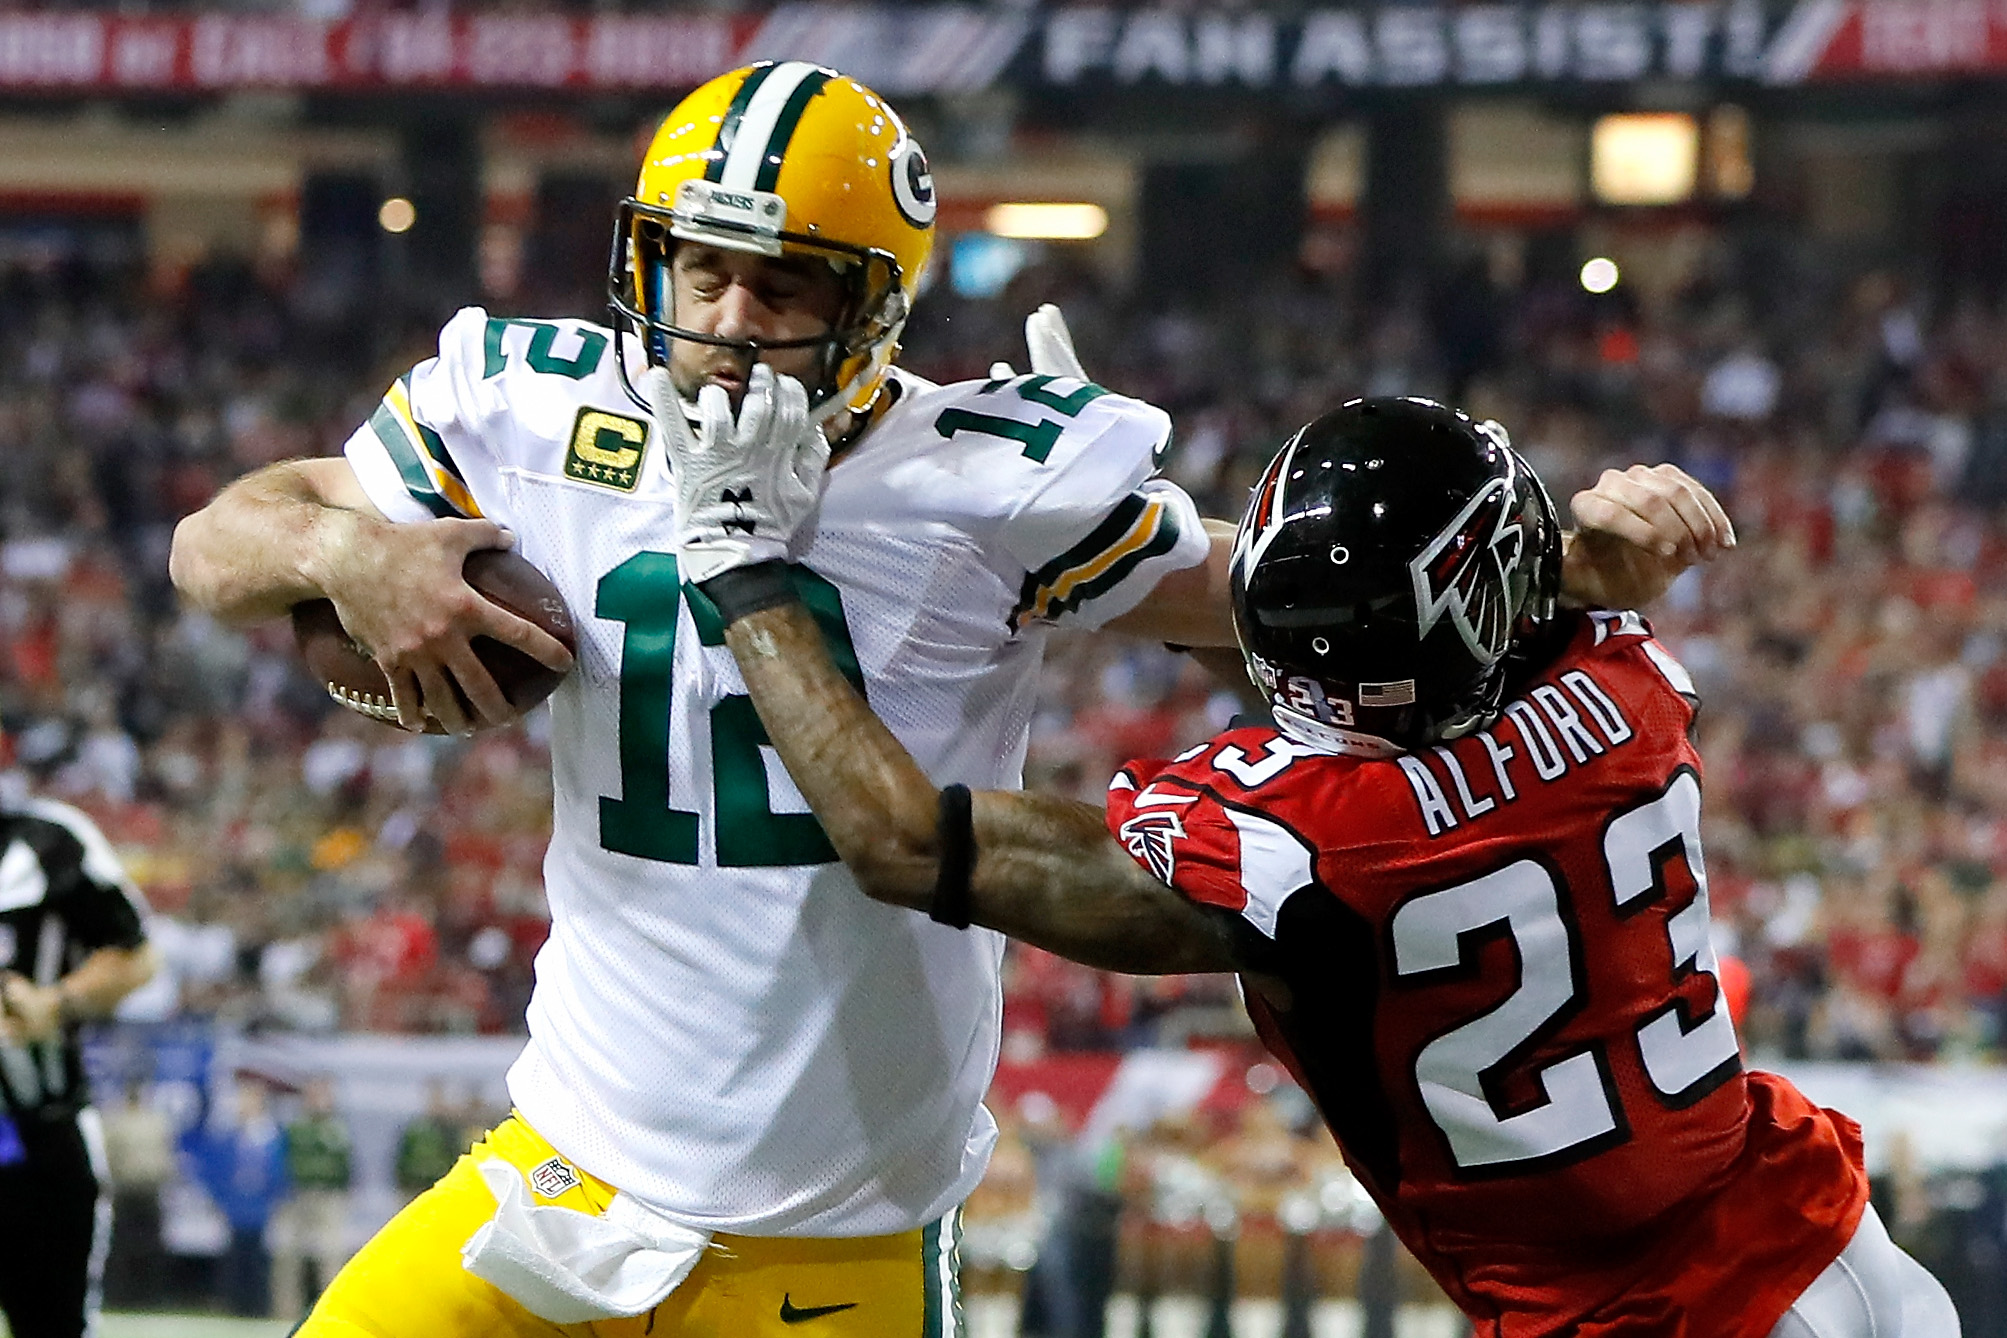 Tailgate Sports Staff SNF Predictions – Week 2